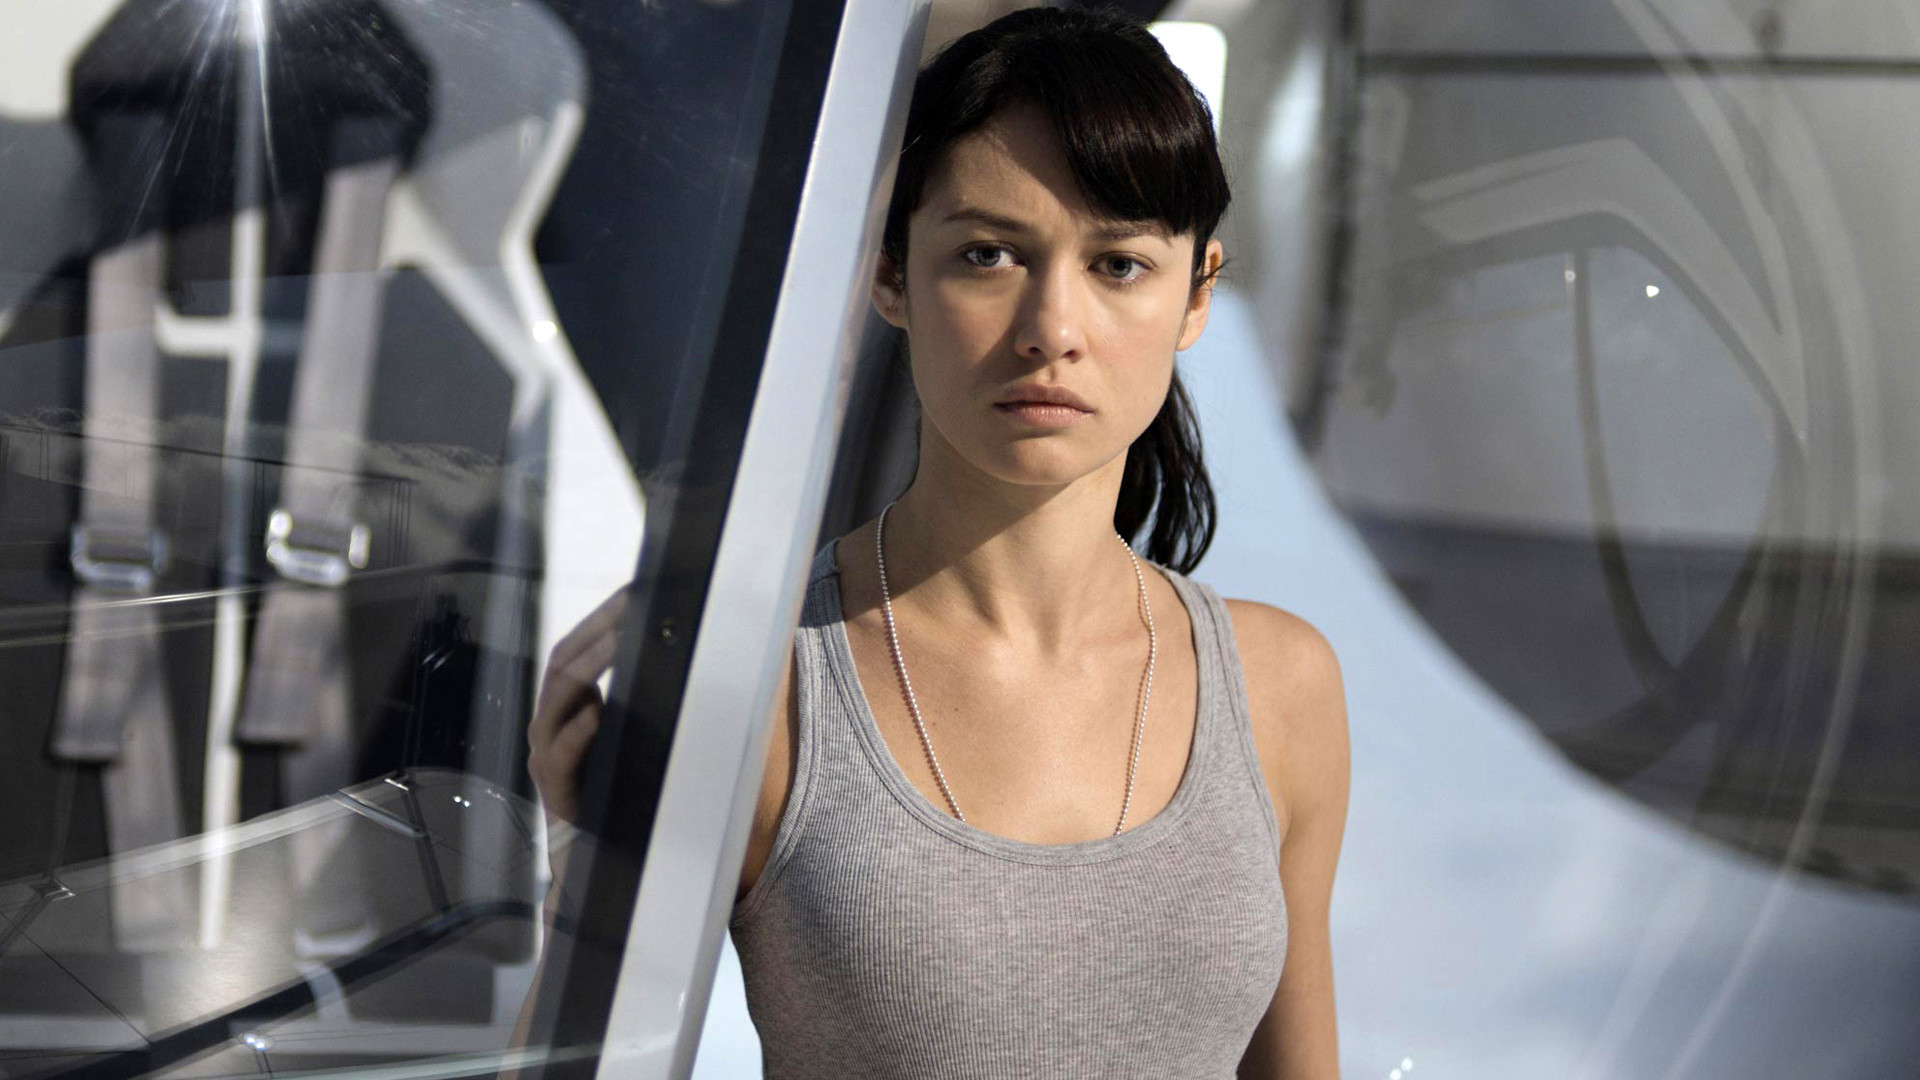 1920x1080 Olga Kurylenko In Oblivion Movie Wallpapers HD